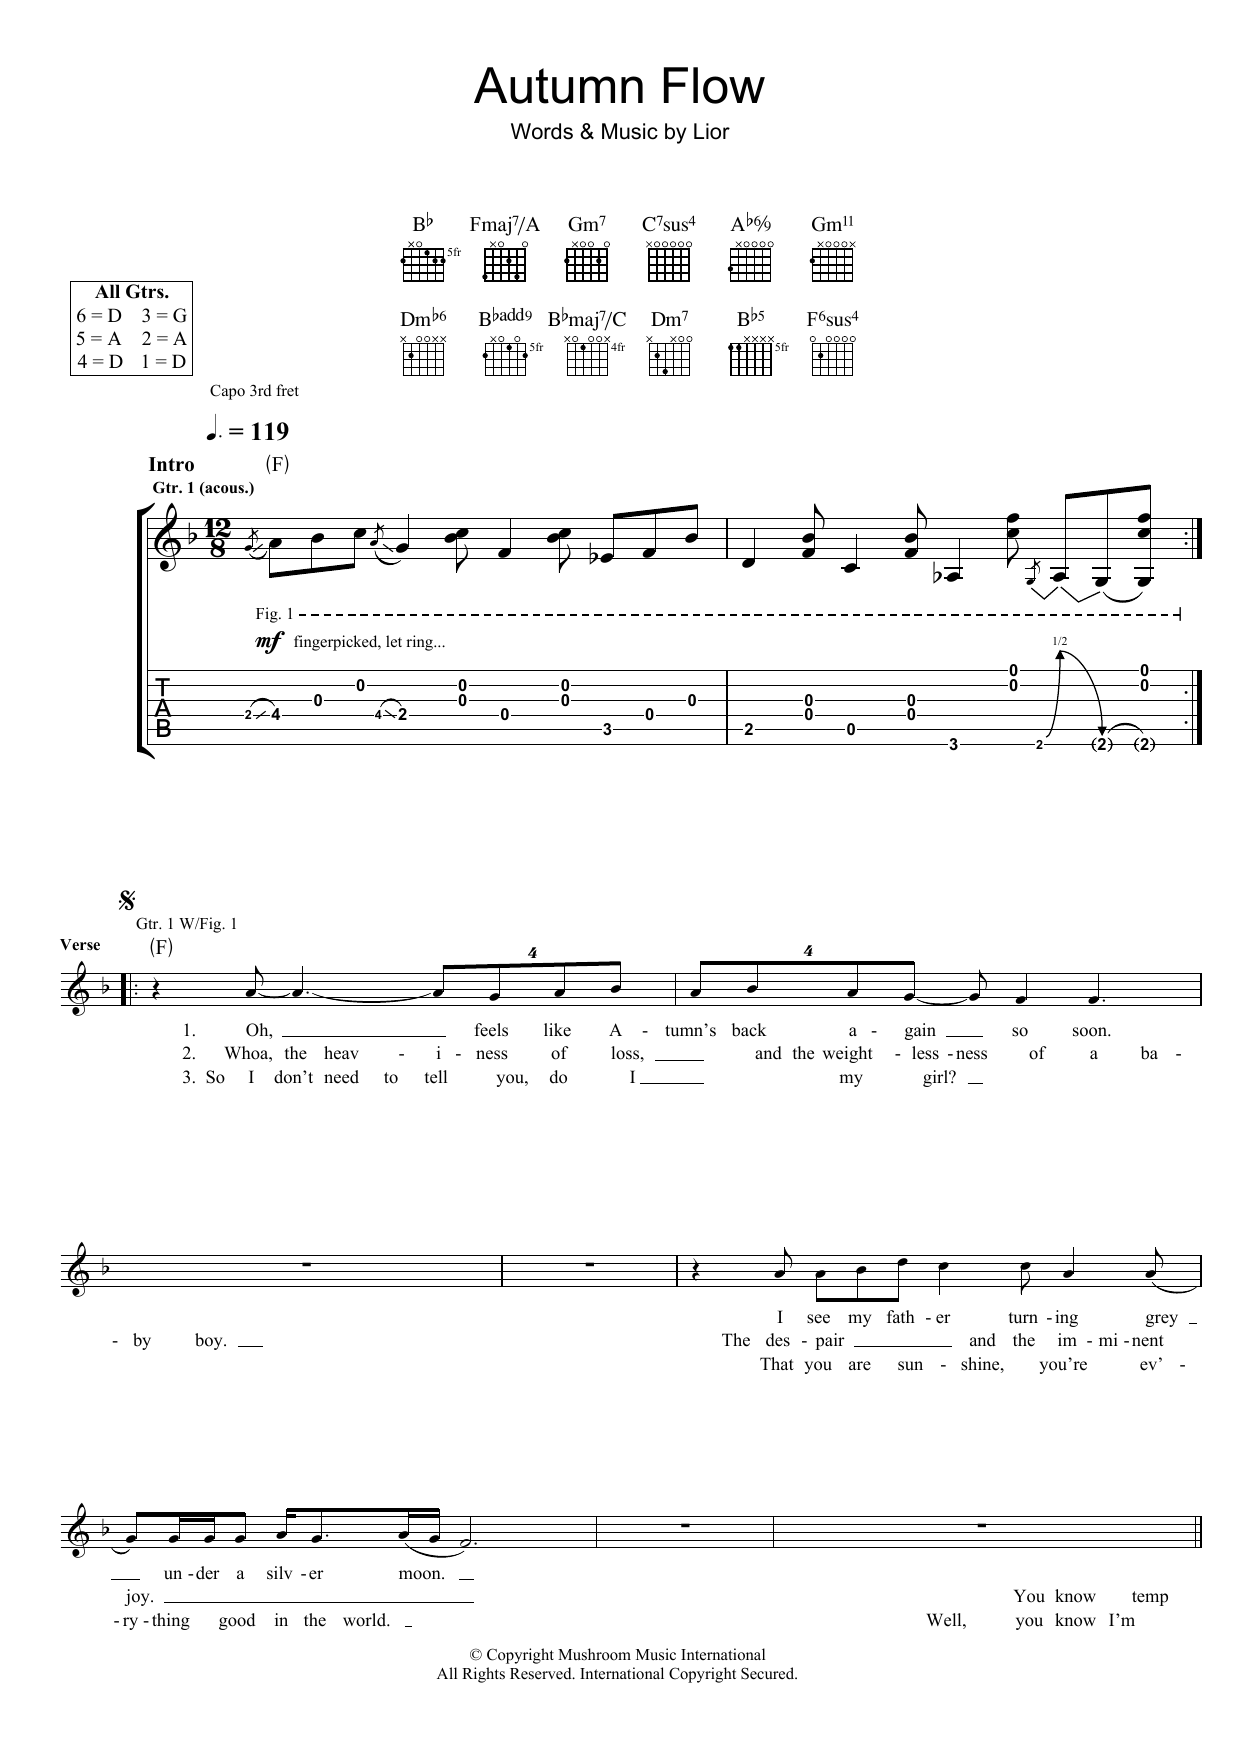 Lior Autumn Flow sheet music preview music notes and score for Guitar Tab including 4 page(s)